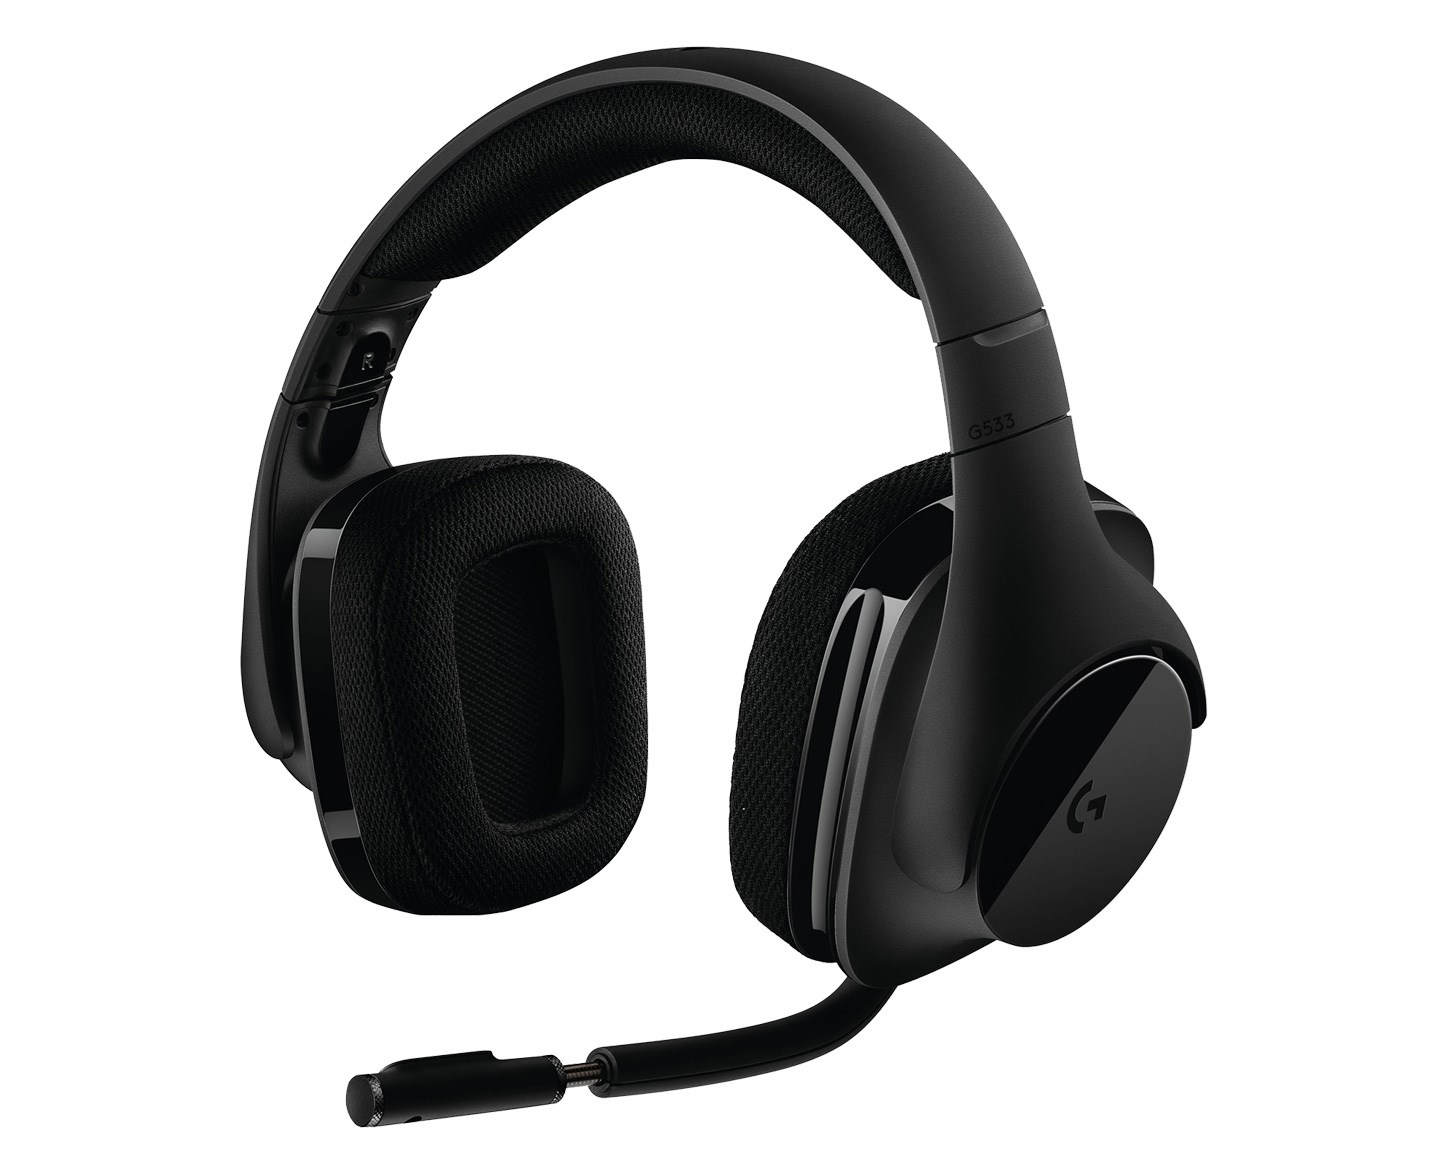 Logitech G533 Prodigy Wirelsess Gaming Headset